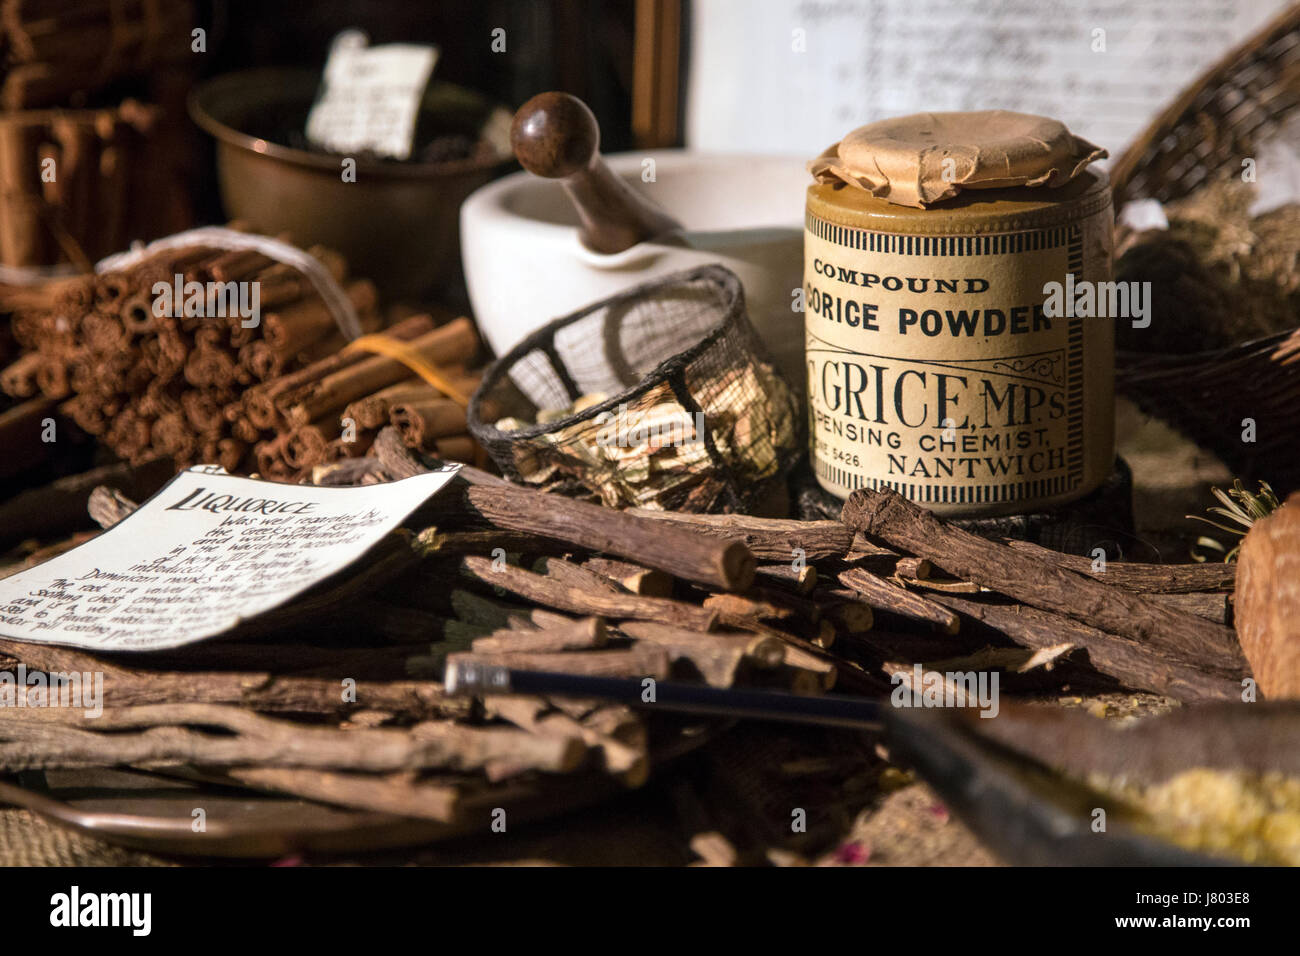 Traditional victorian apothecary's, counter with spices, herbs, pestle and mortar still life (Old Operating - Stock Image